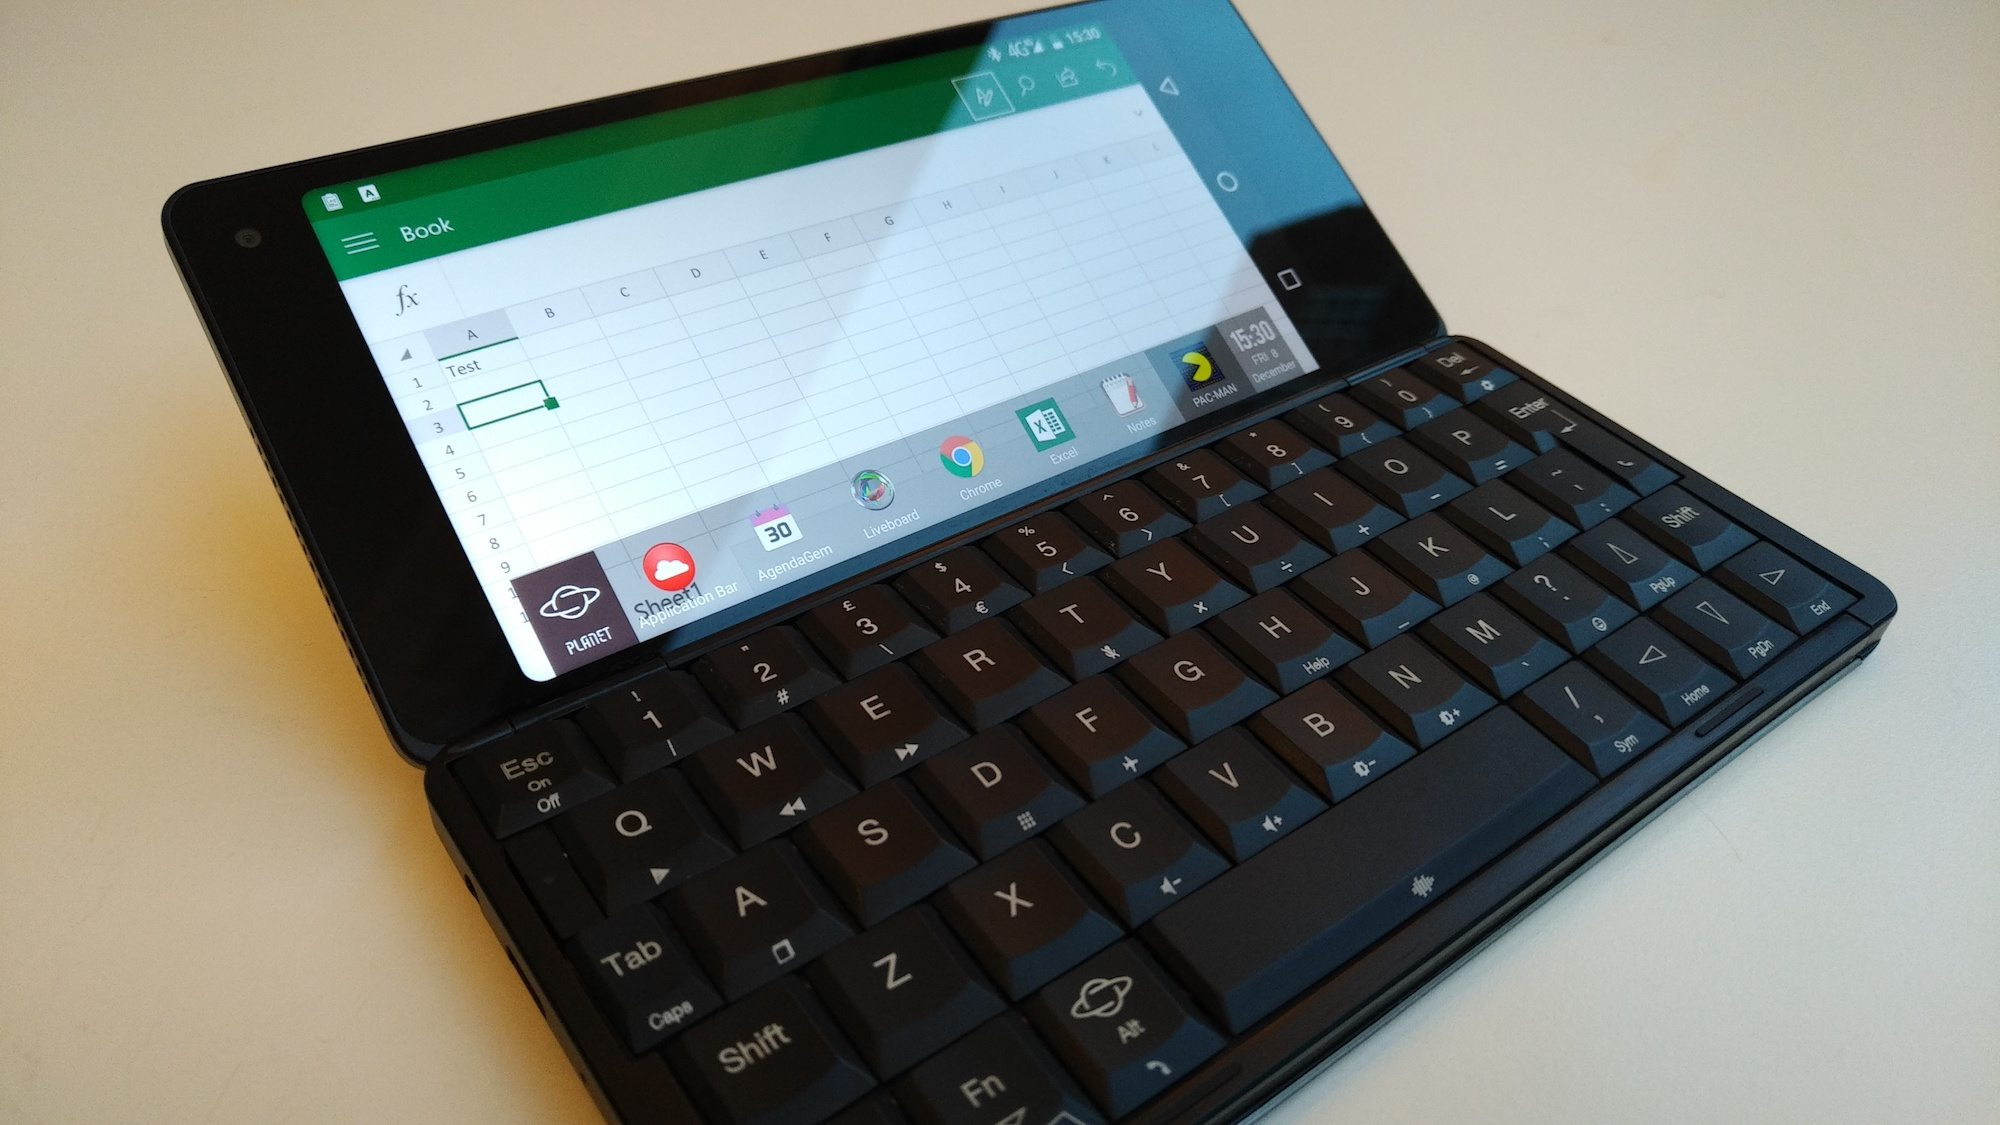 Gemini PDA (pre-production) running Excel in landscape format and showing the custom menu bar